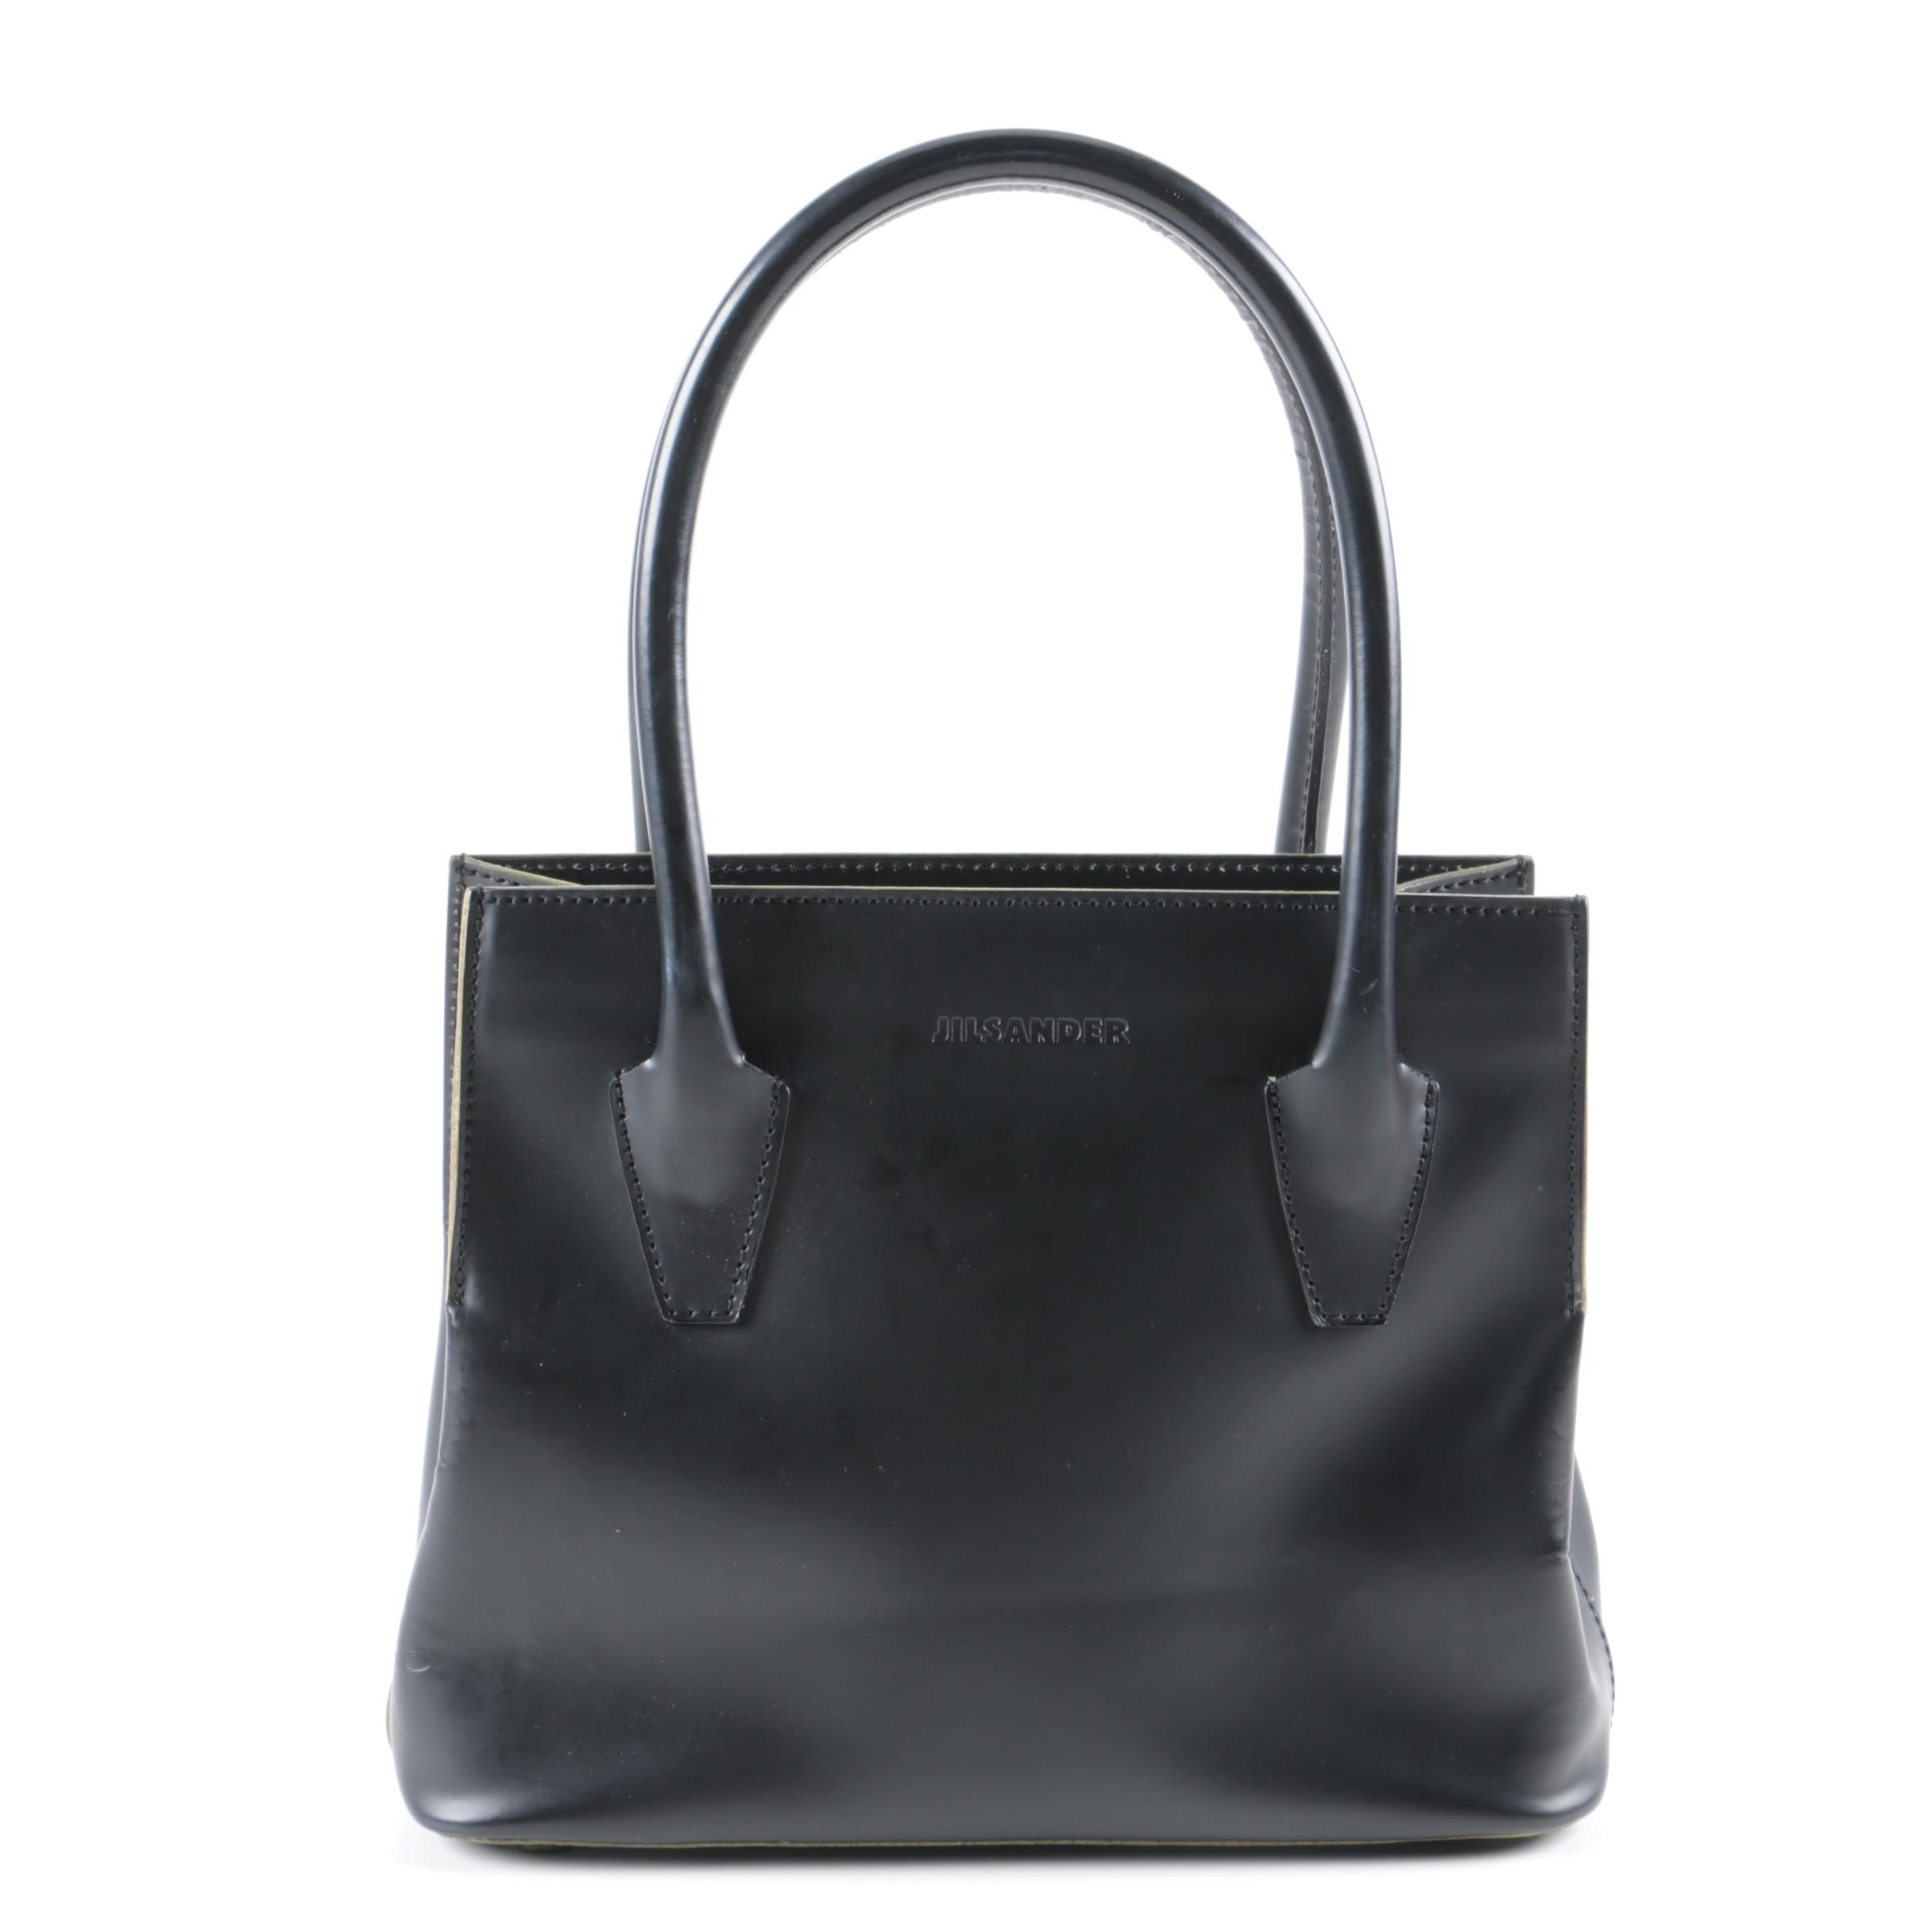 Jil Sander Black Leather Handbag, Made in Italy